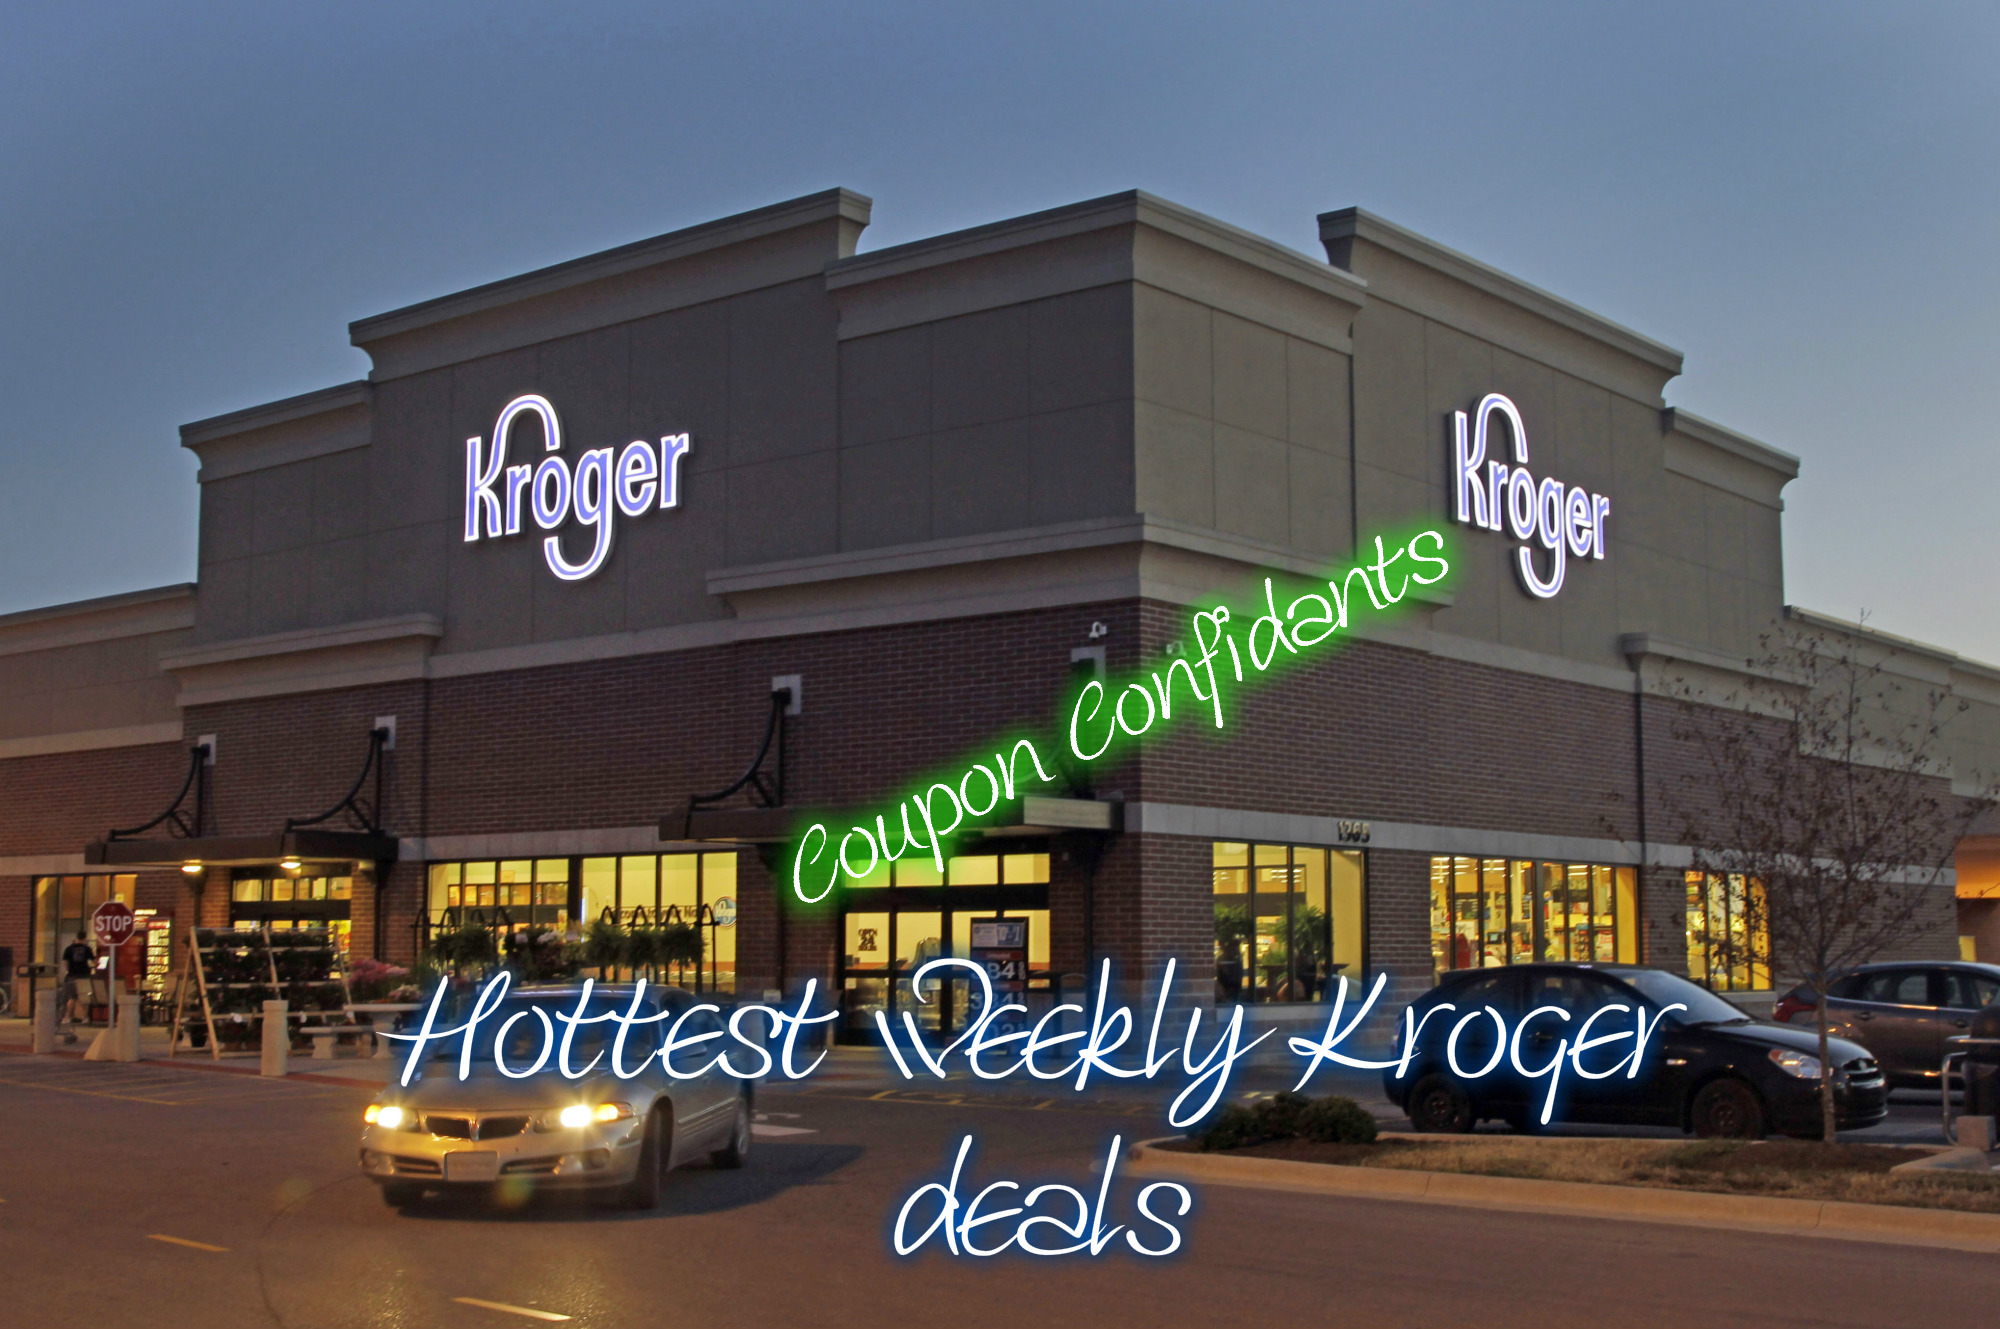 Kroger Mid Atlantic Region Deals Sep 27 - Oct 03